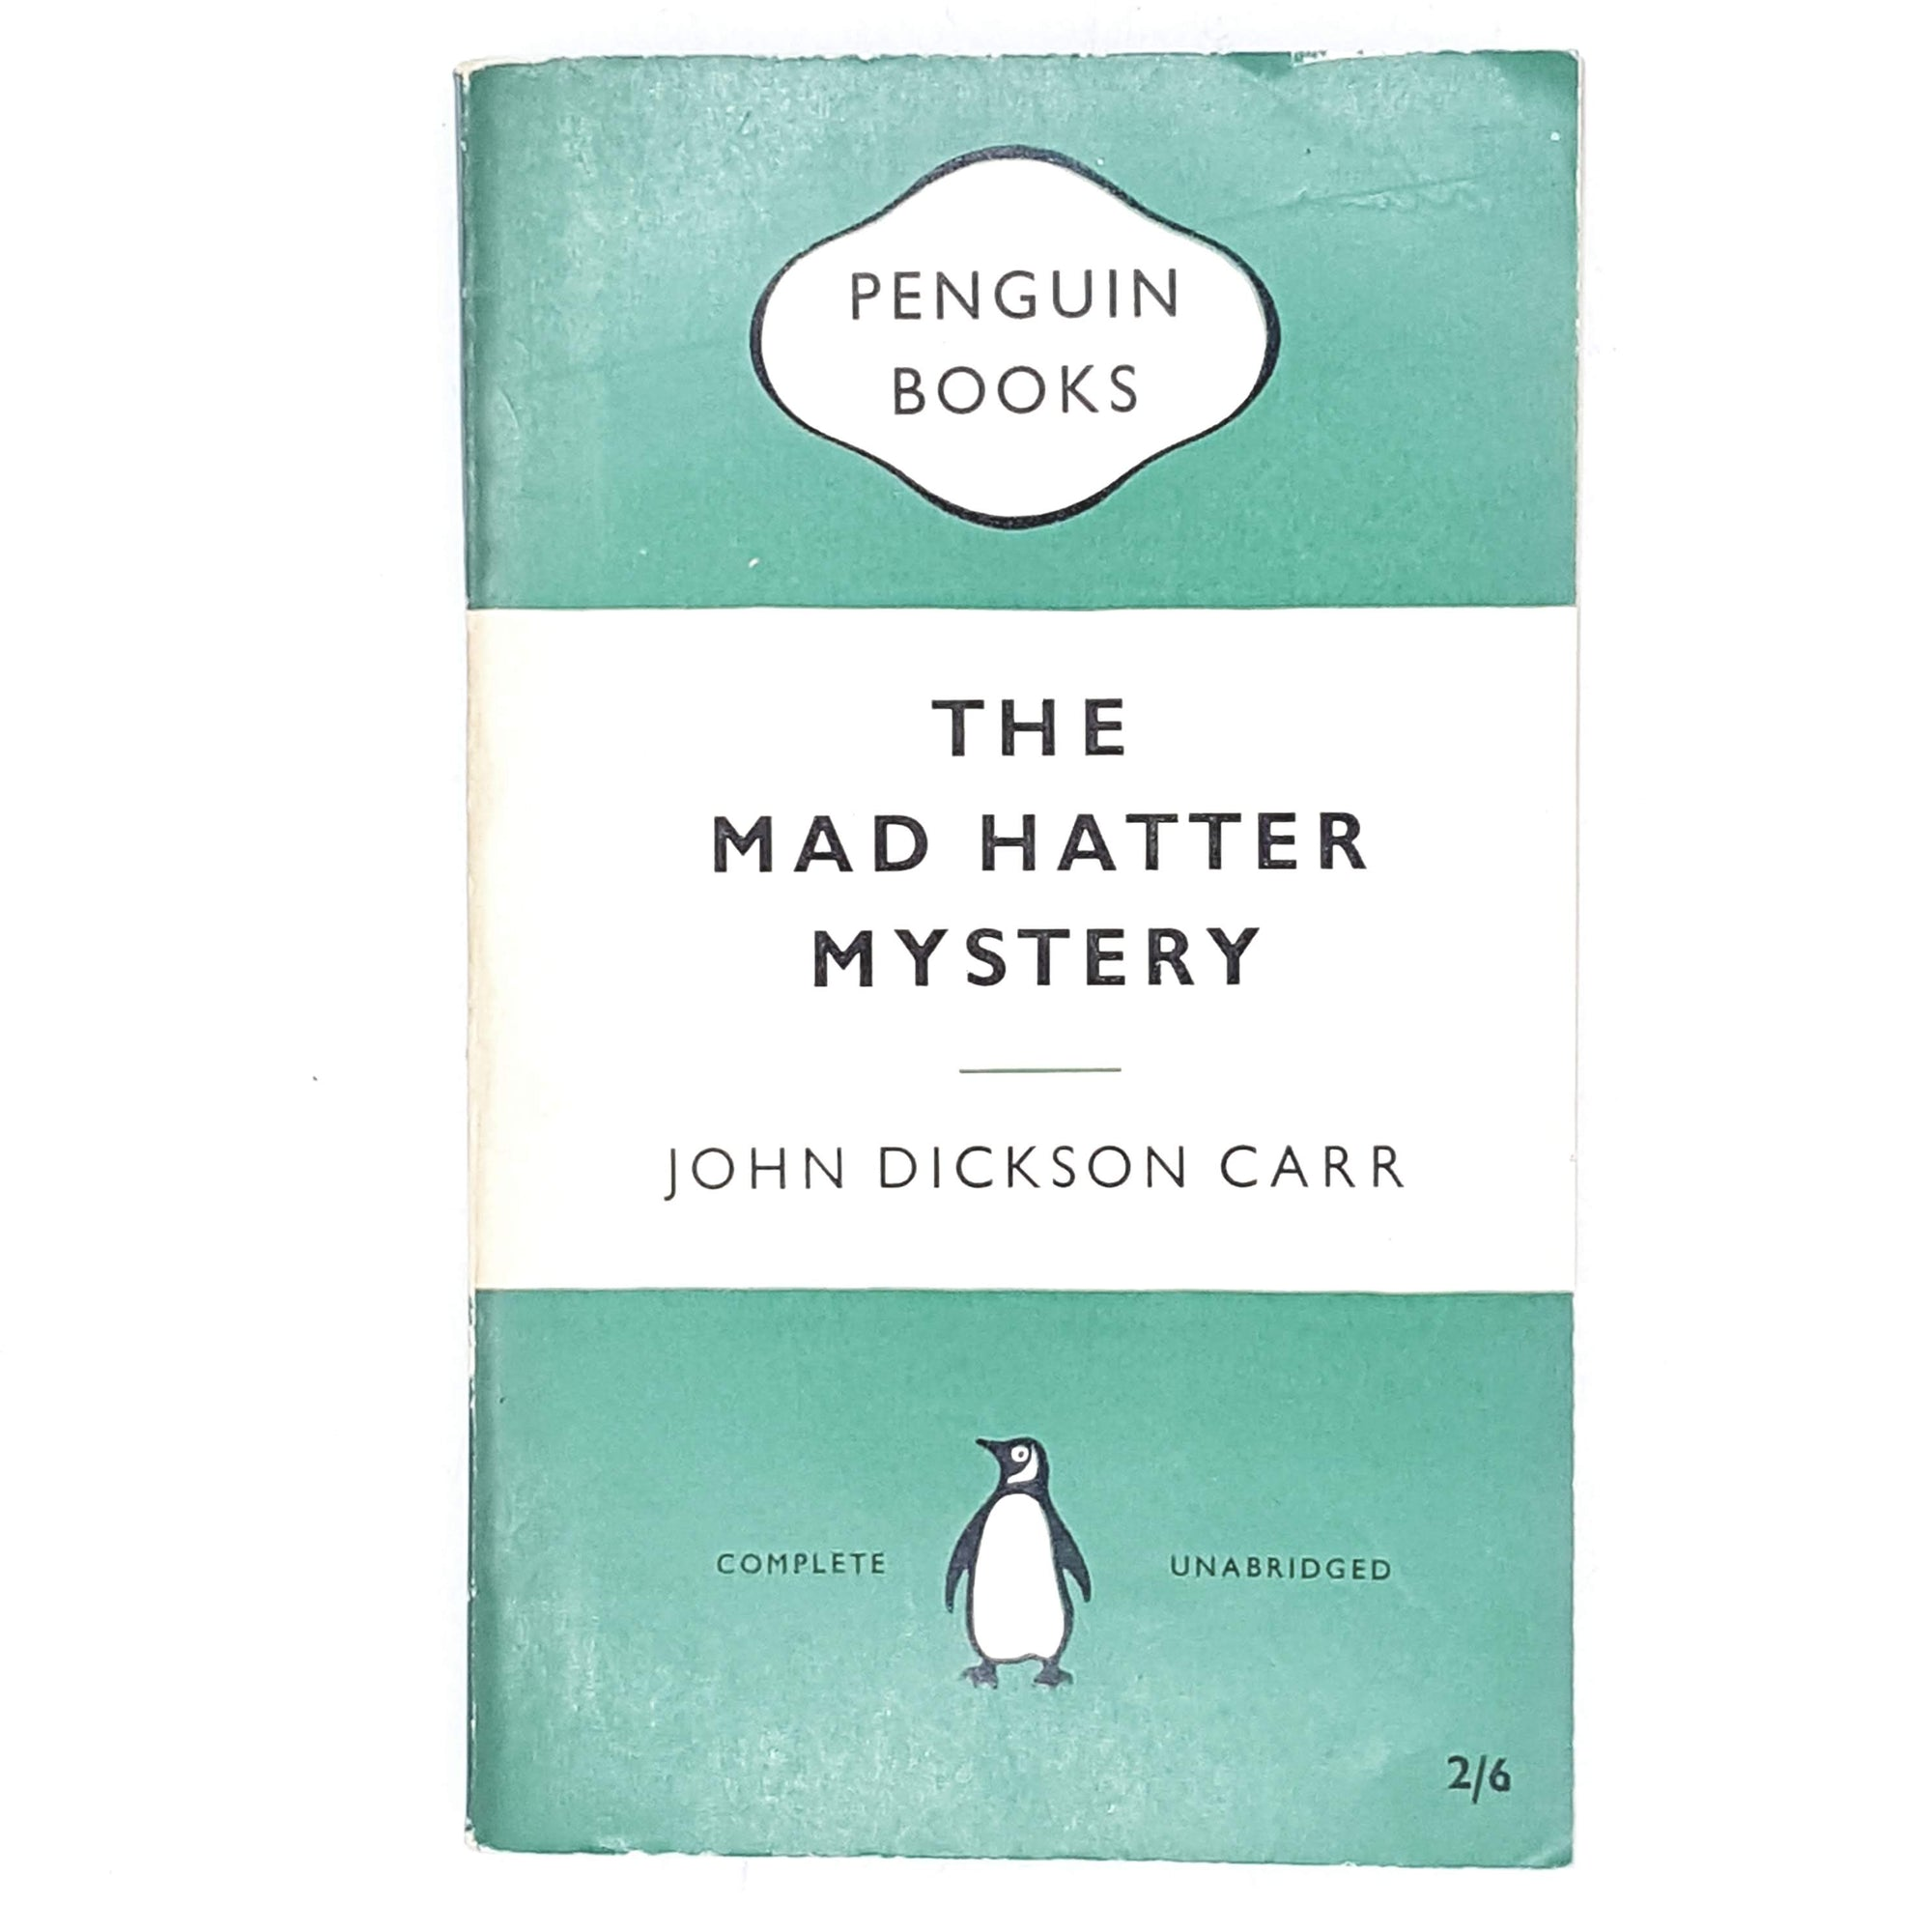 Vintage Penguin The Mad Hatter Mystery by John Dickson Carr 1959